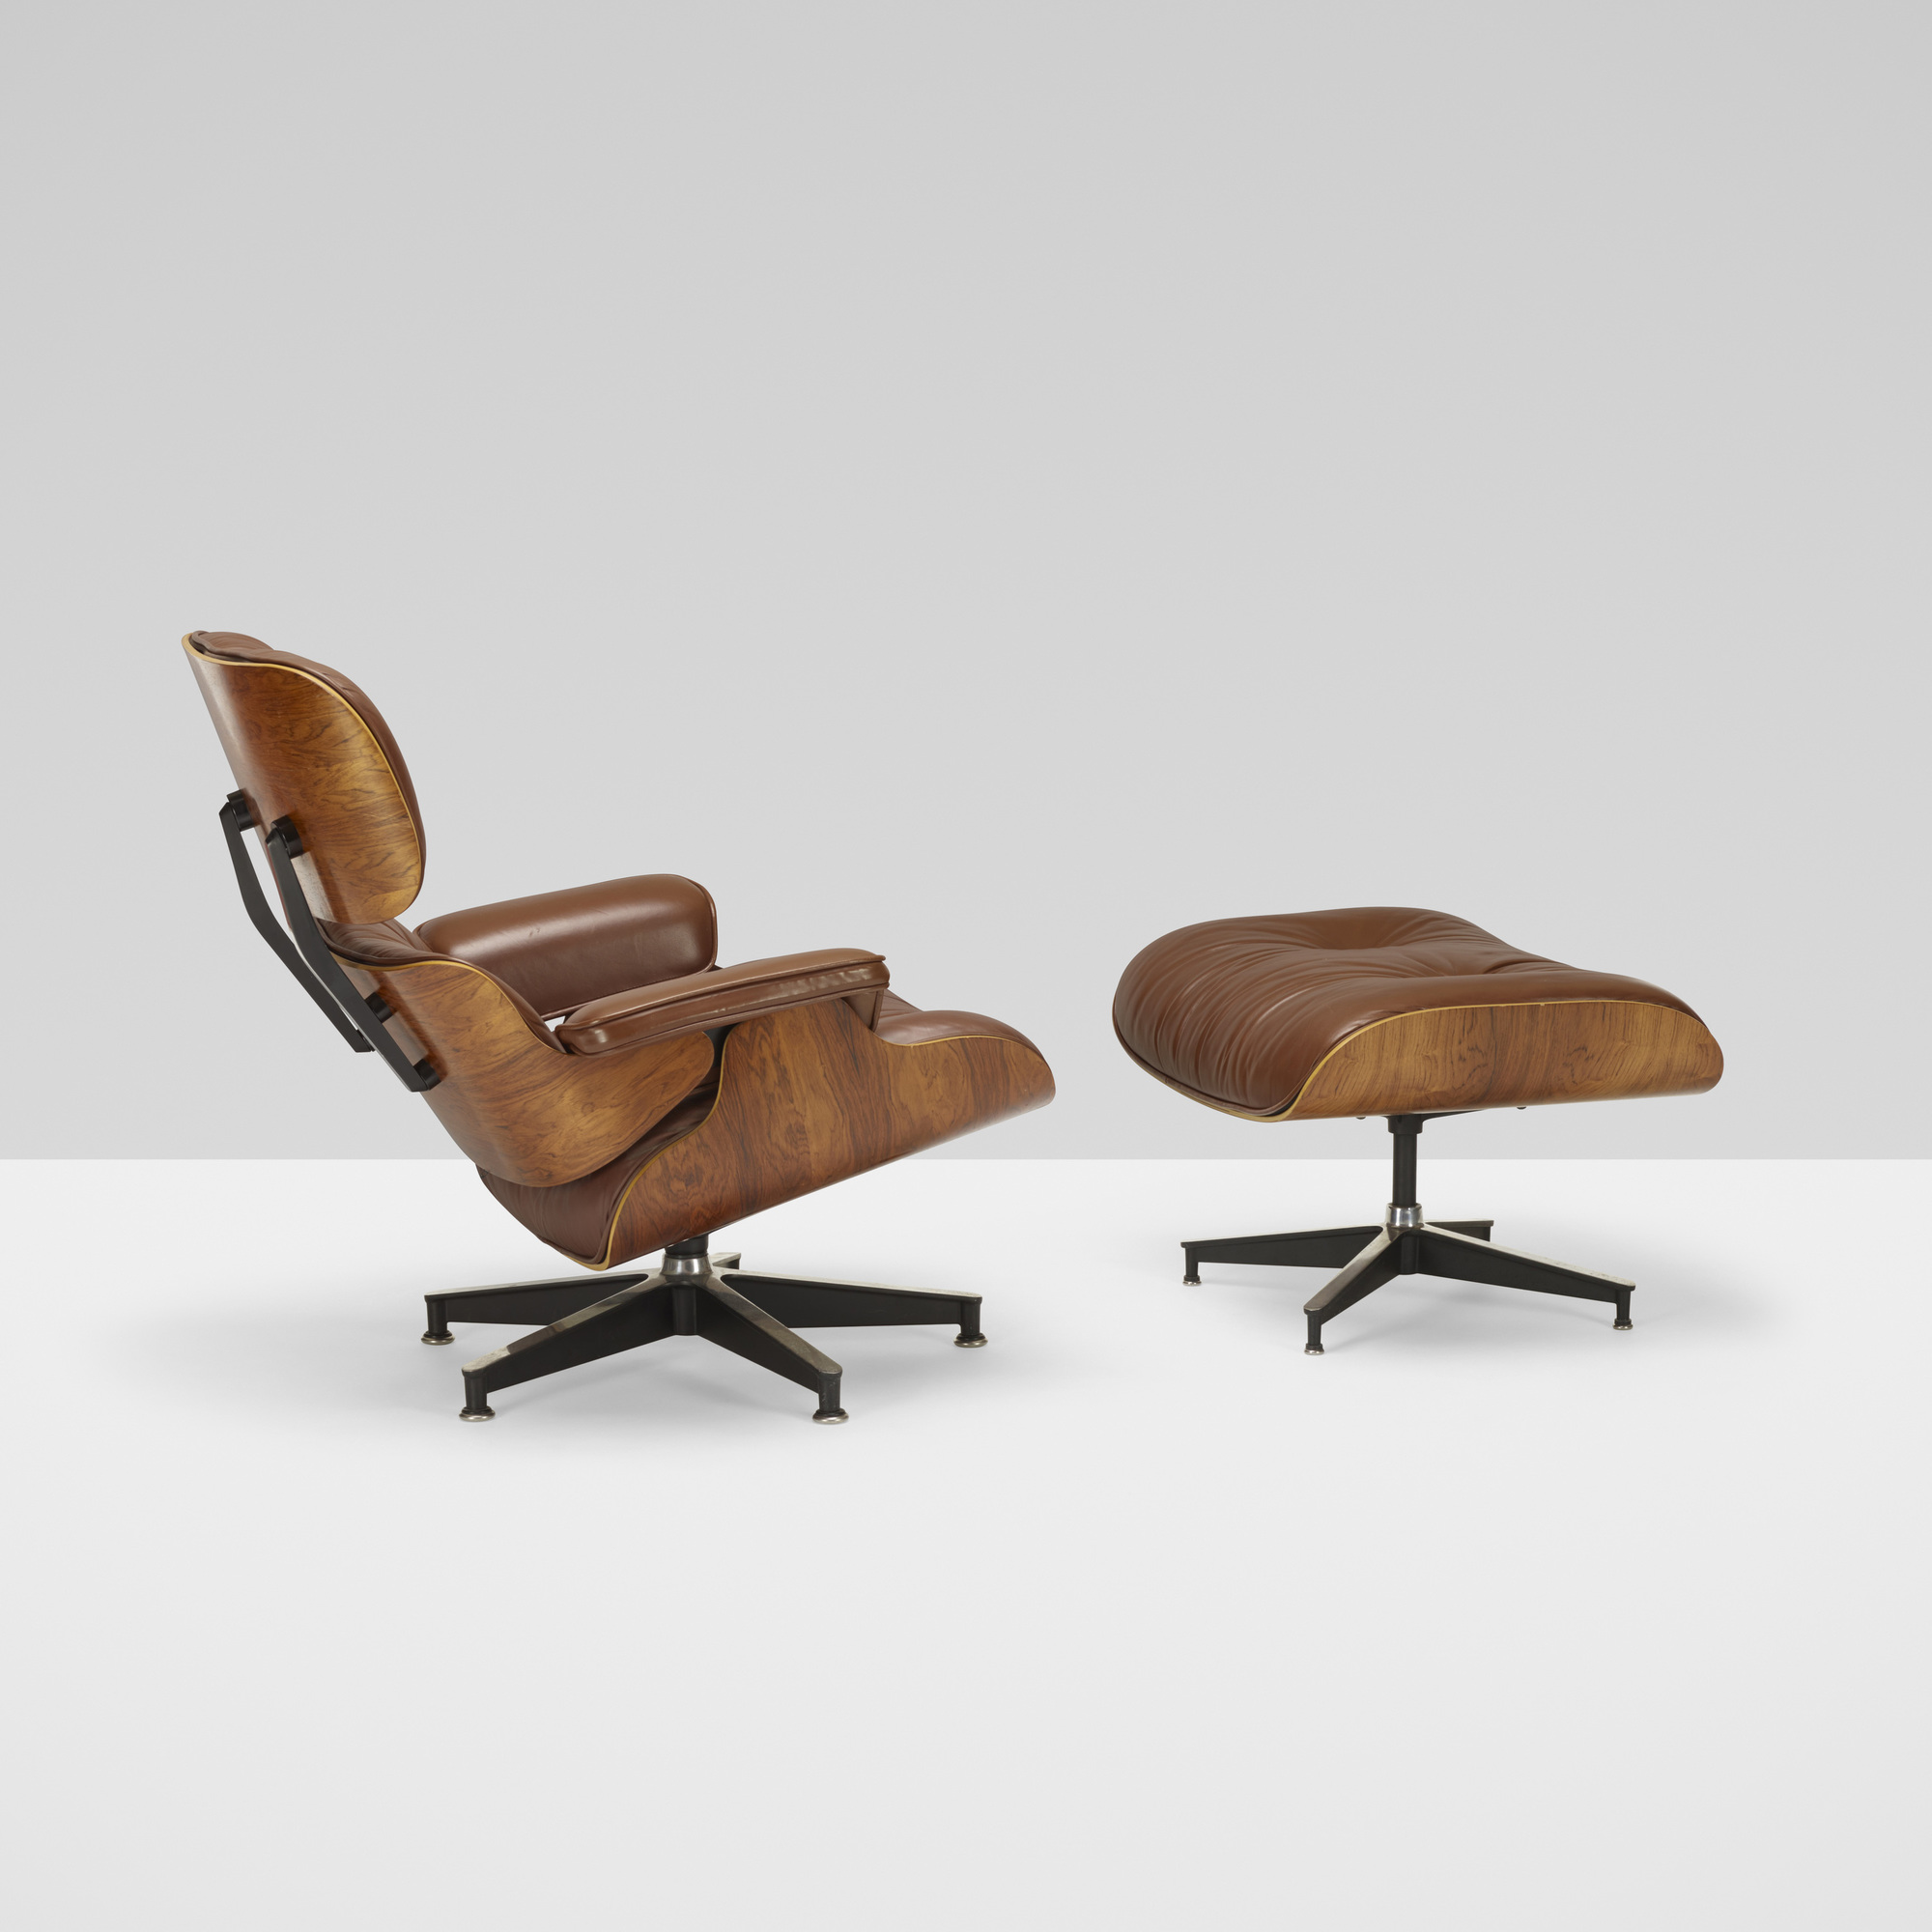 357: Charles and Ray Eames / 670 lounge chair and 671 ottoman (2 of 6)